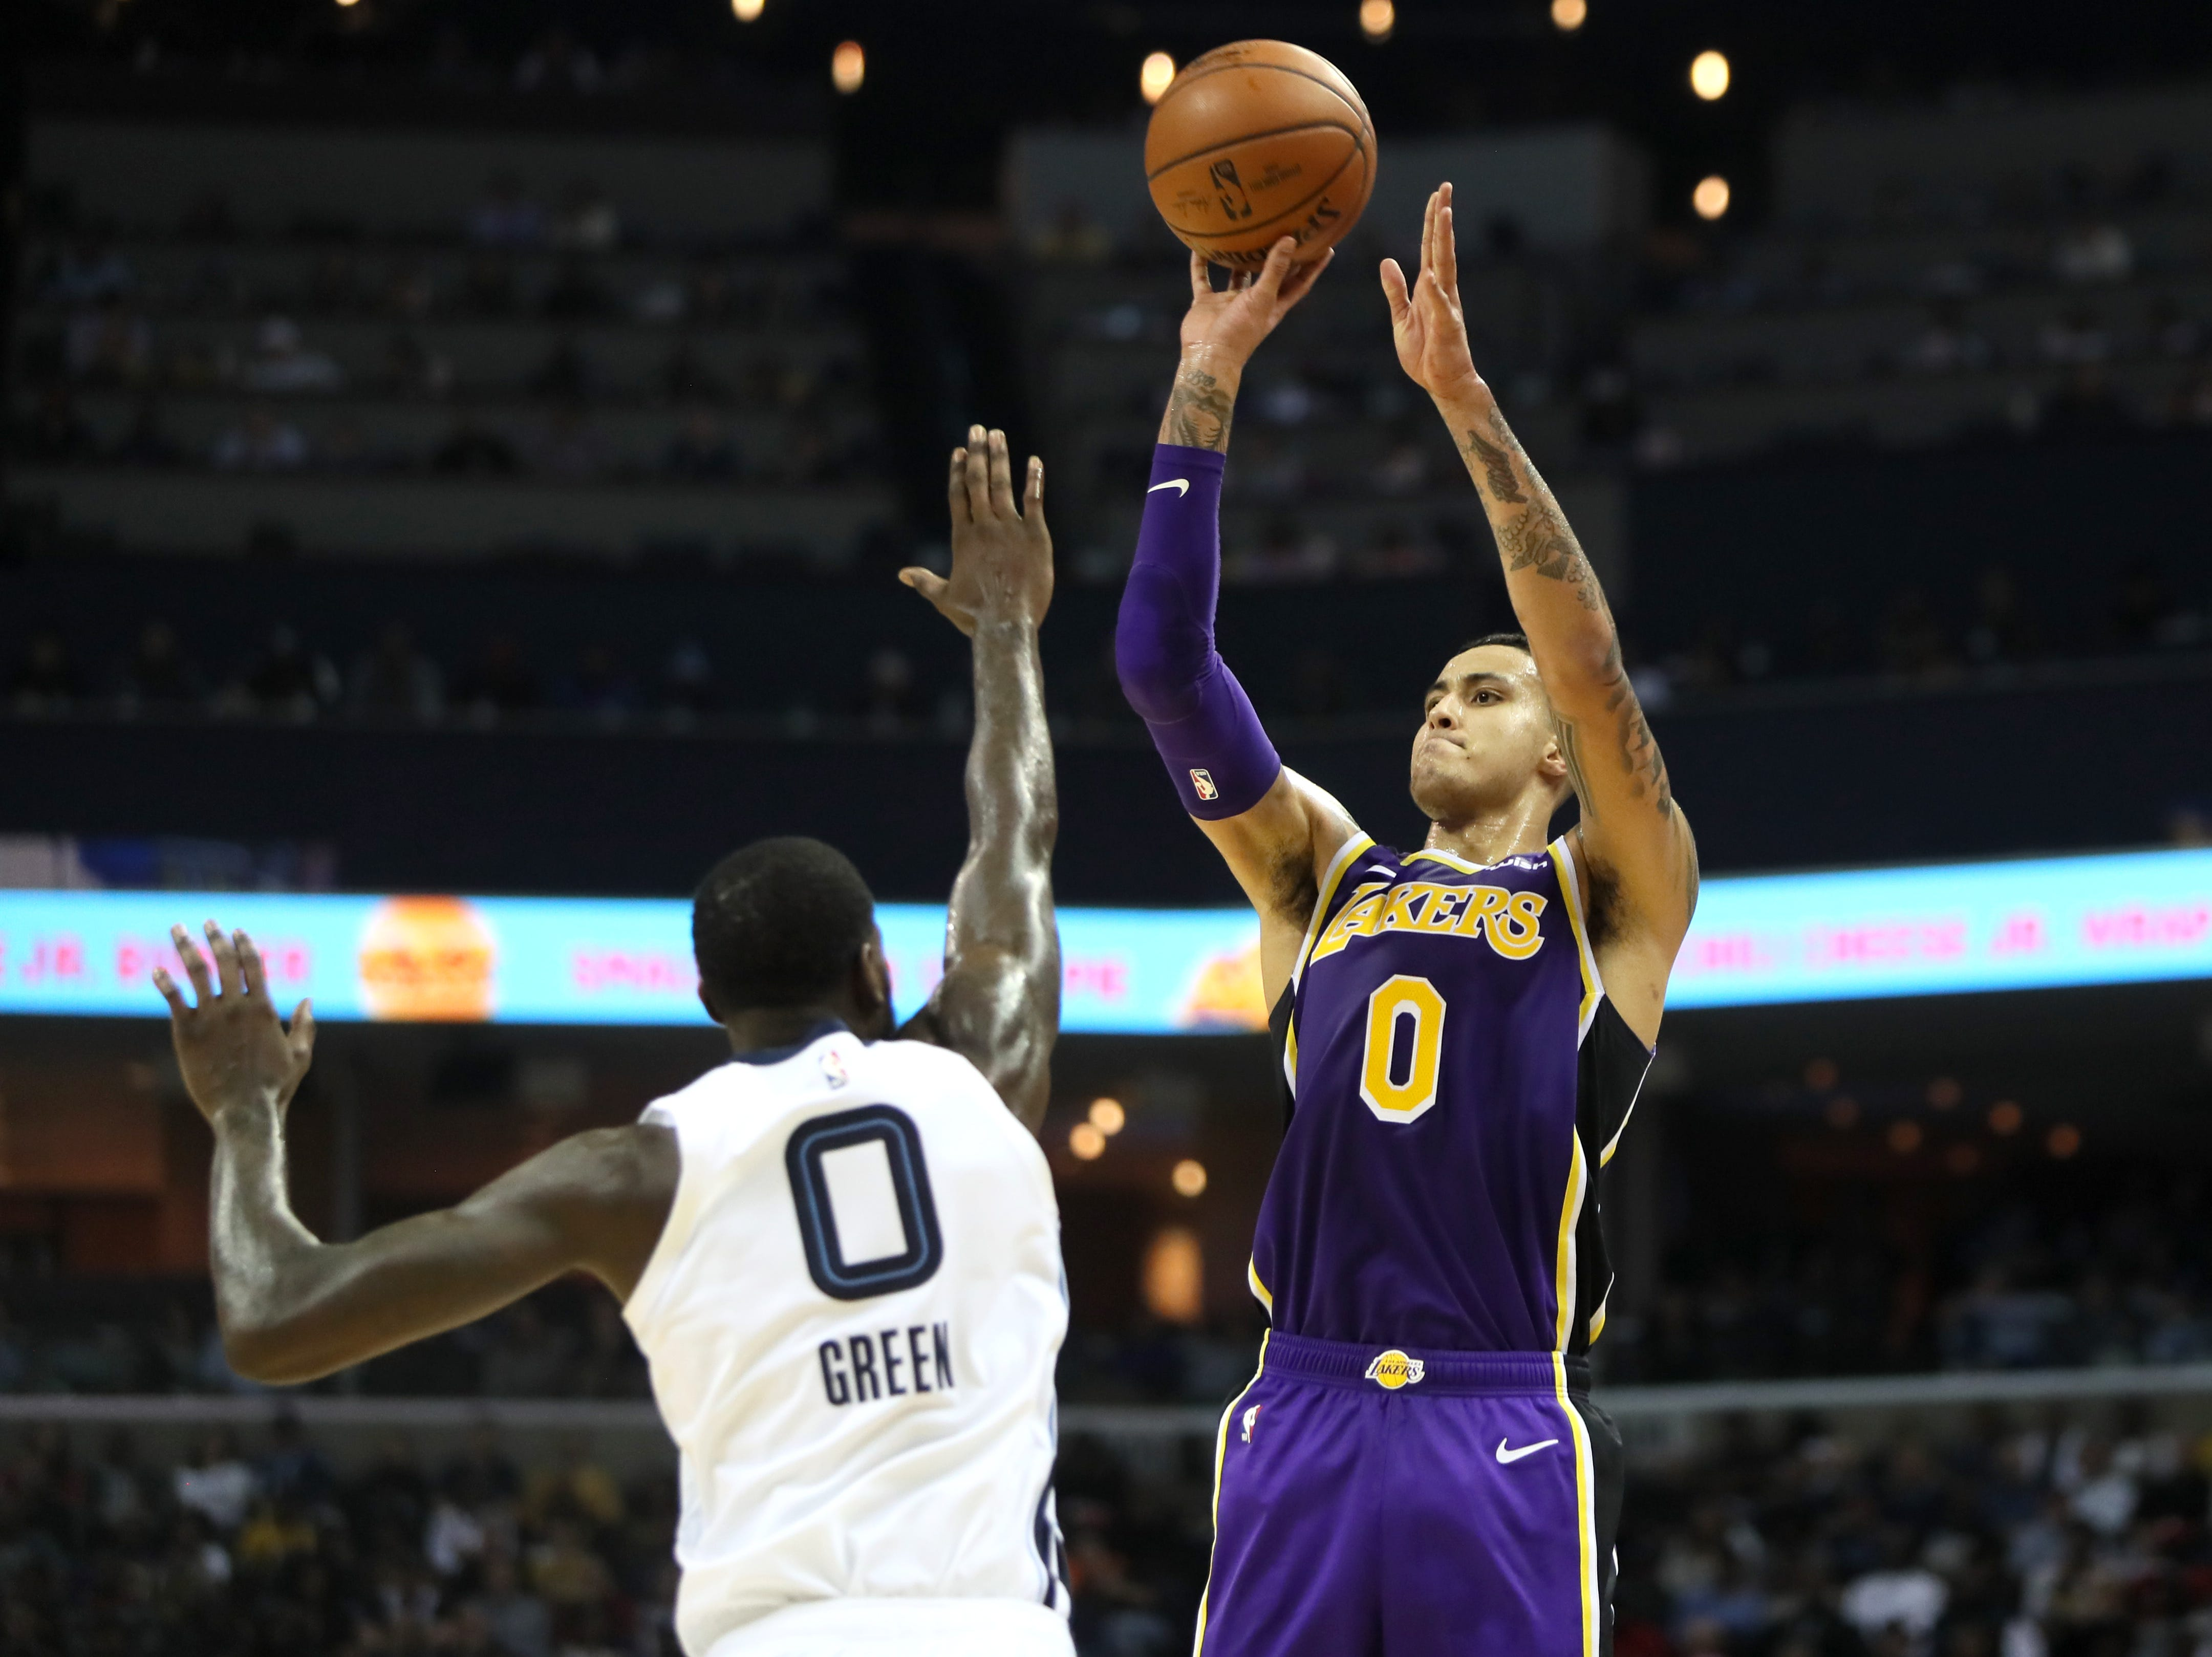 Los Angeles Lakers forward Kyle Kuzma shoots a 3-pointer over Memphis Grizzlies forward JaMychal Green during their game at the FedExForum on Saturday, Dec. 8, 2018.